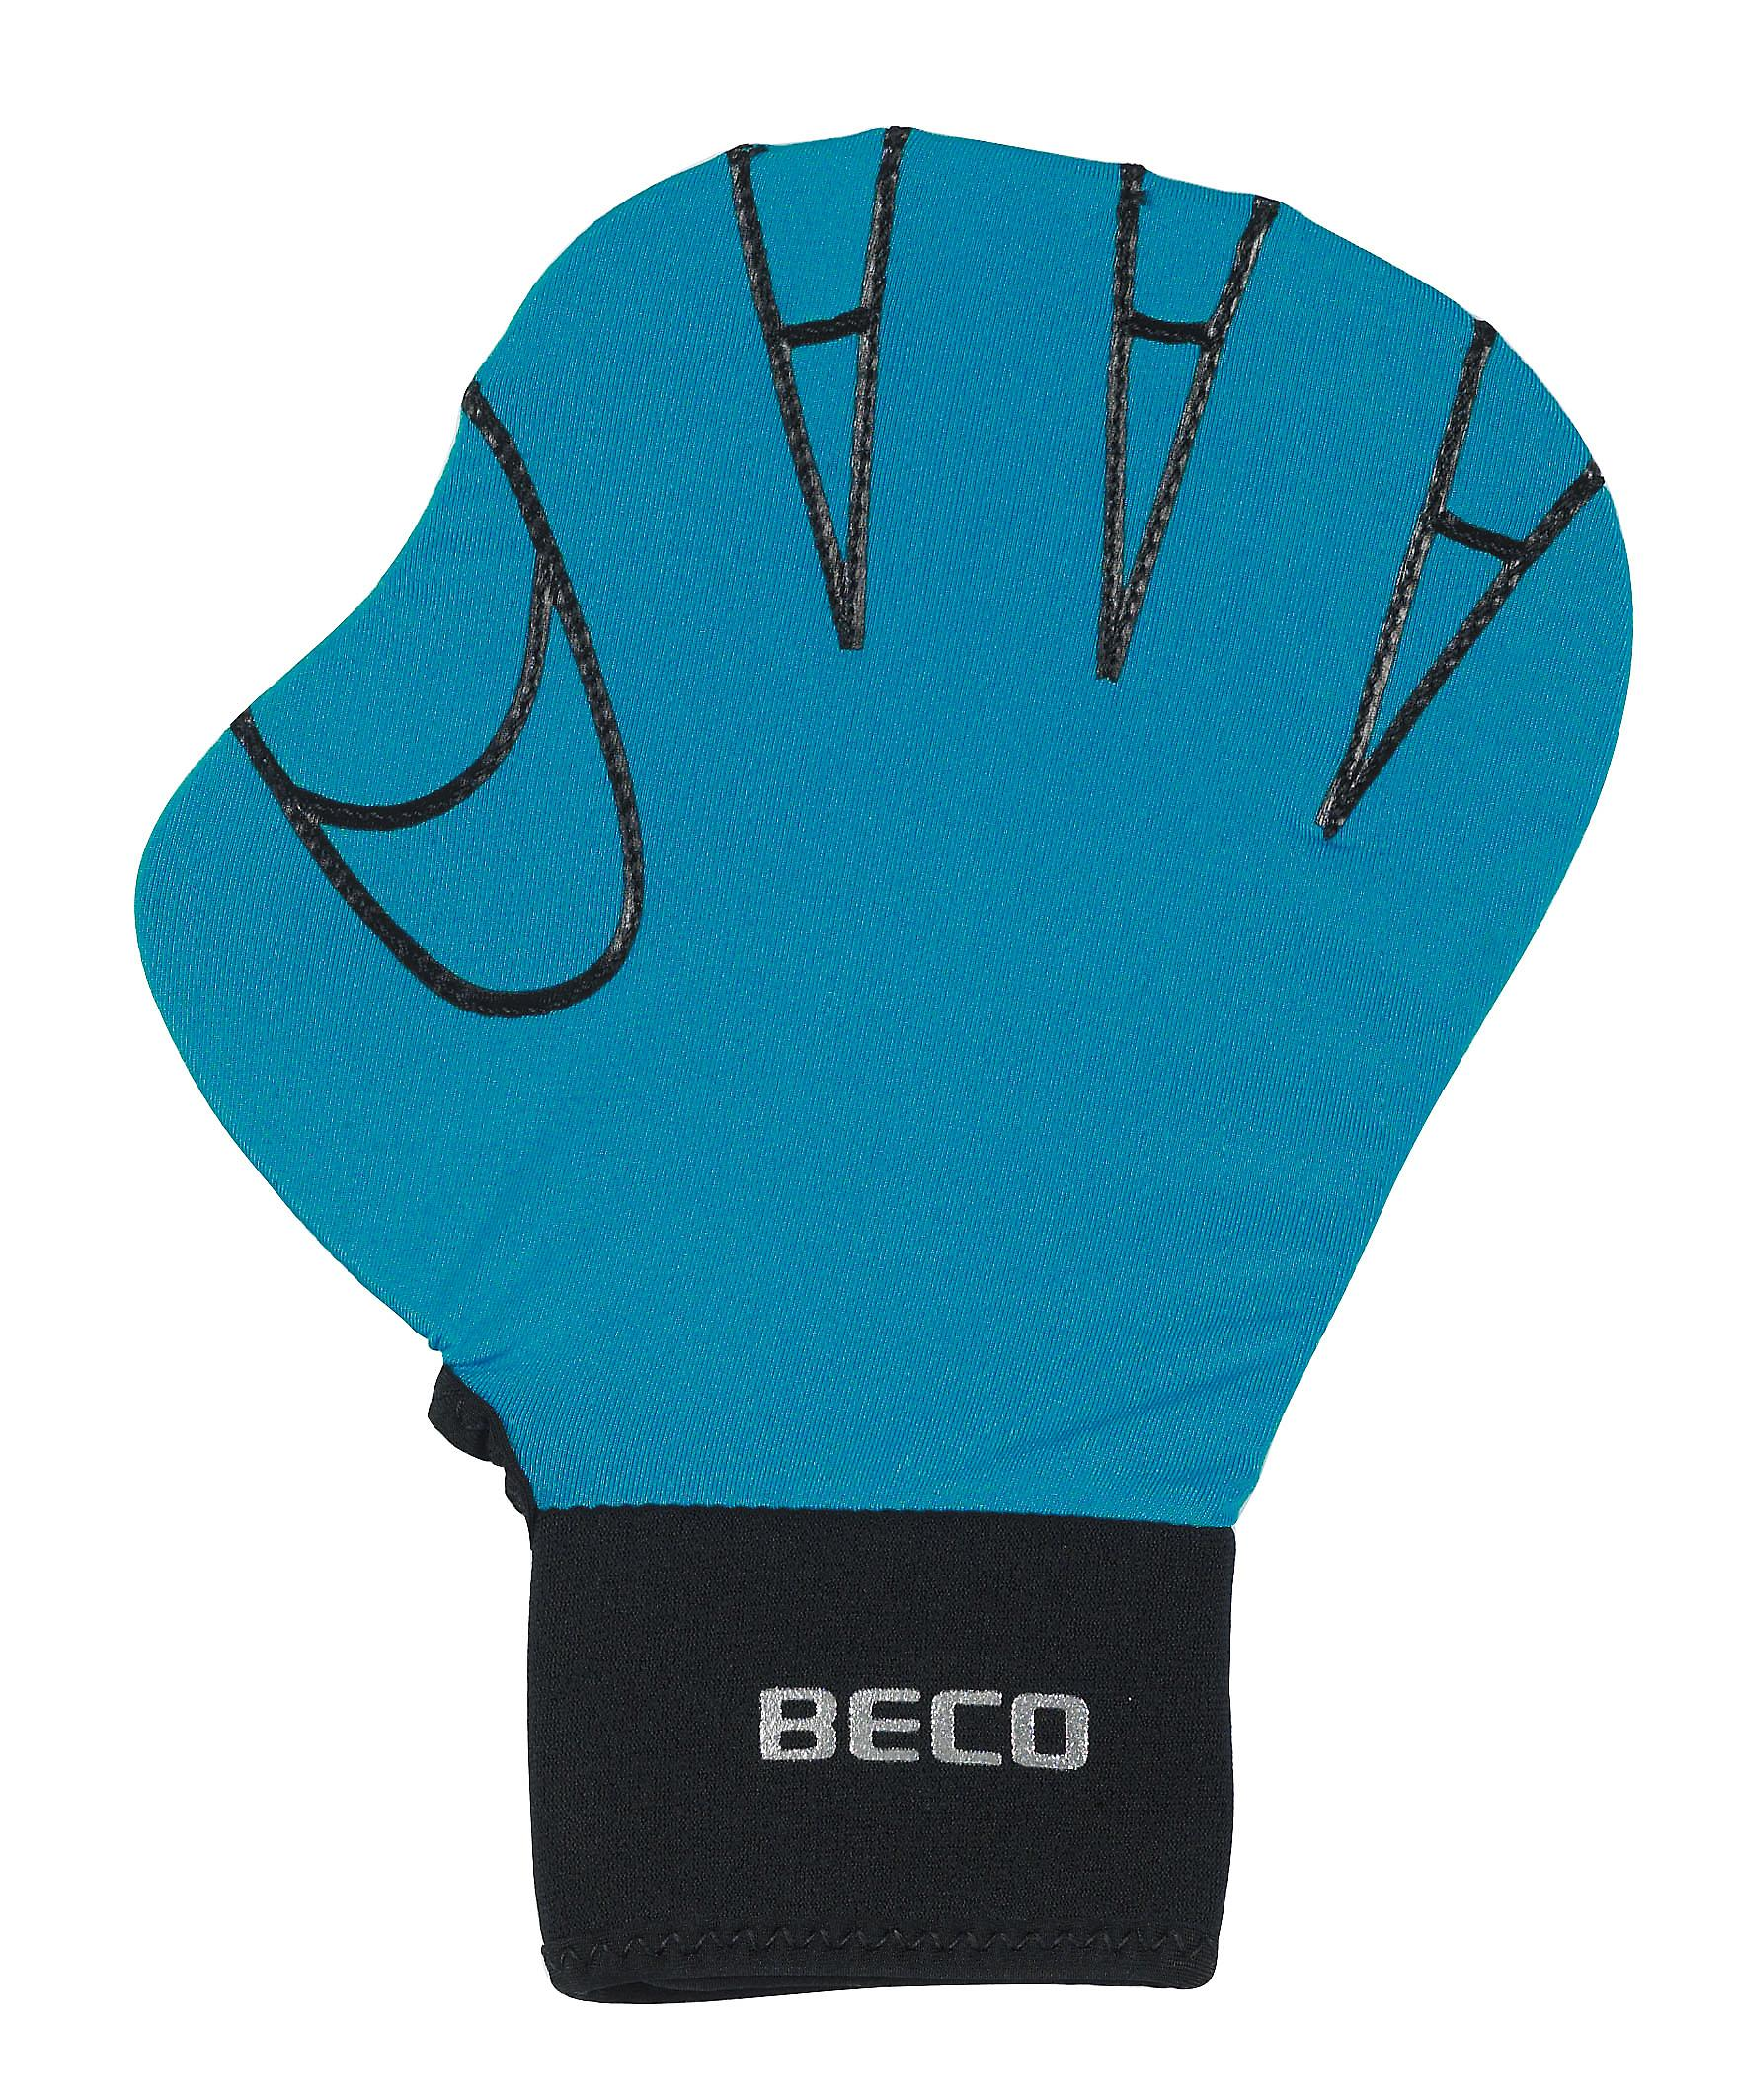 BECO Full Swimming Glove (Small) - Turquoise